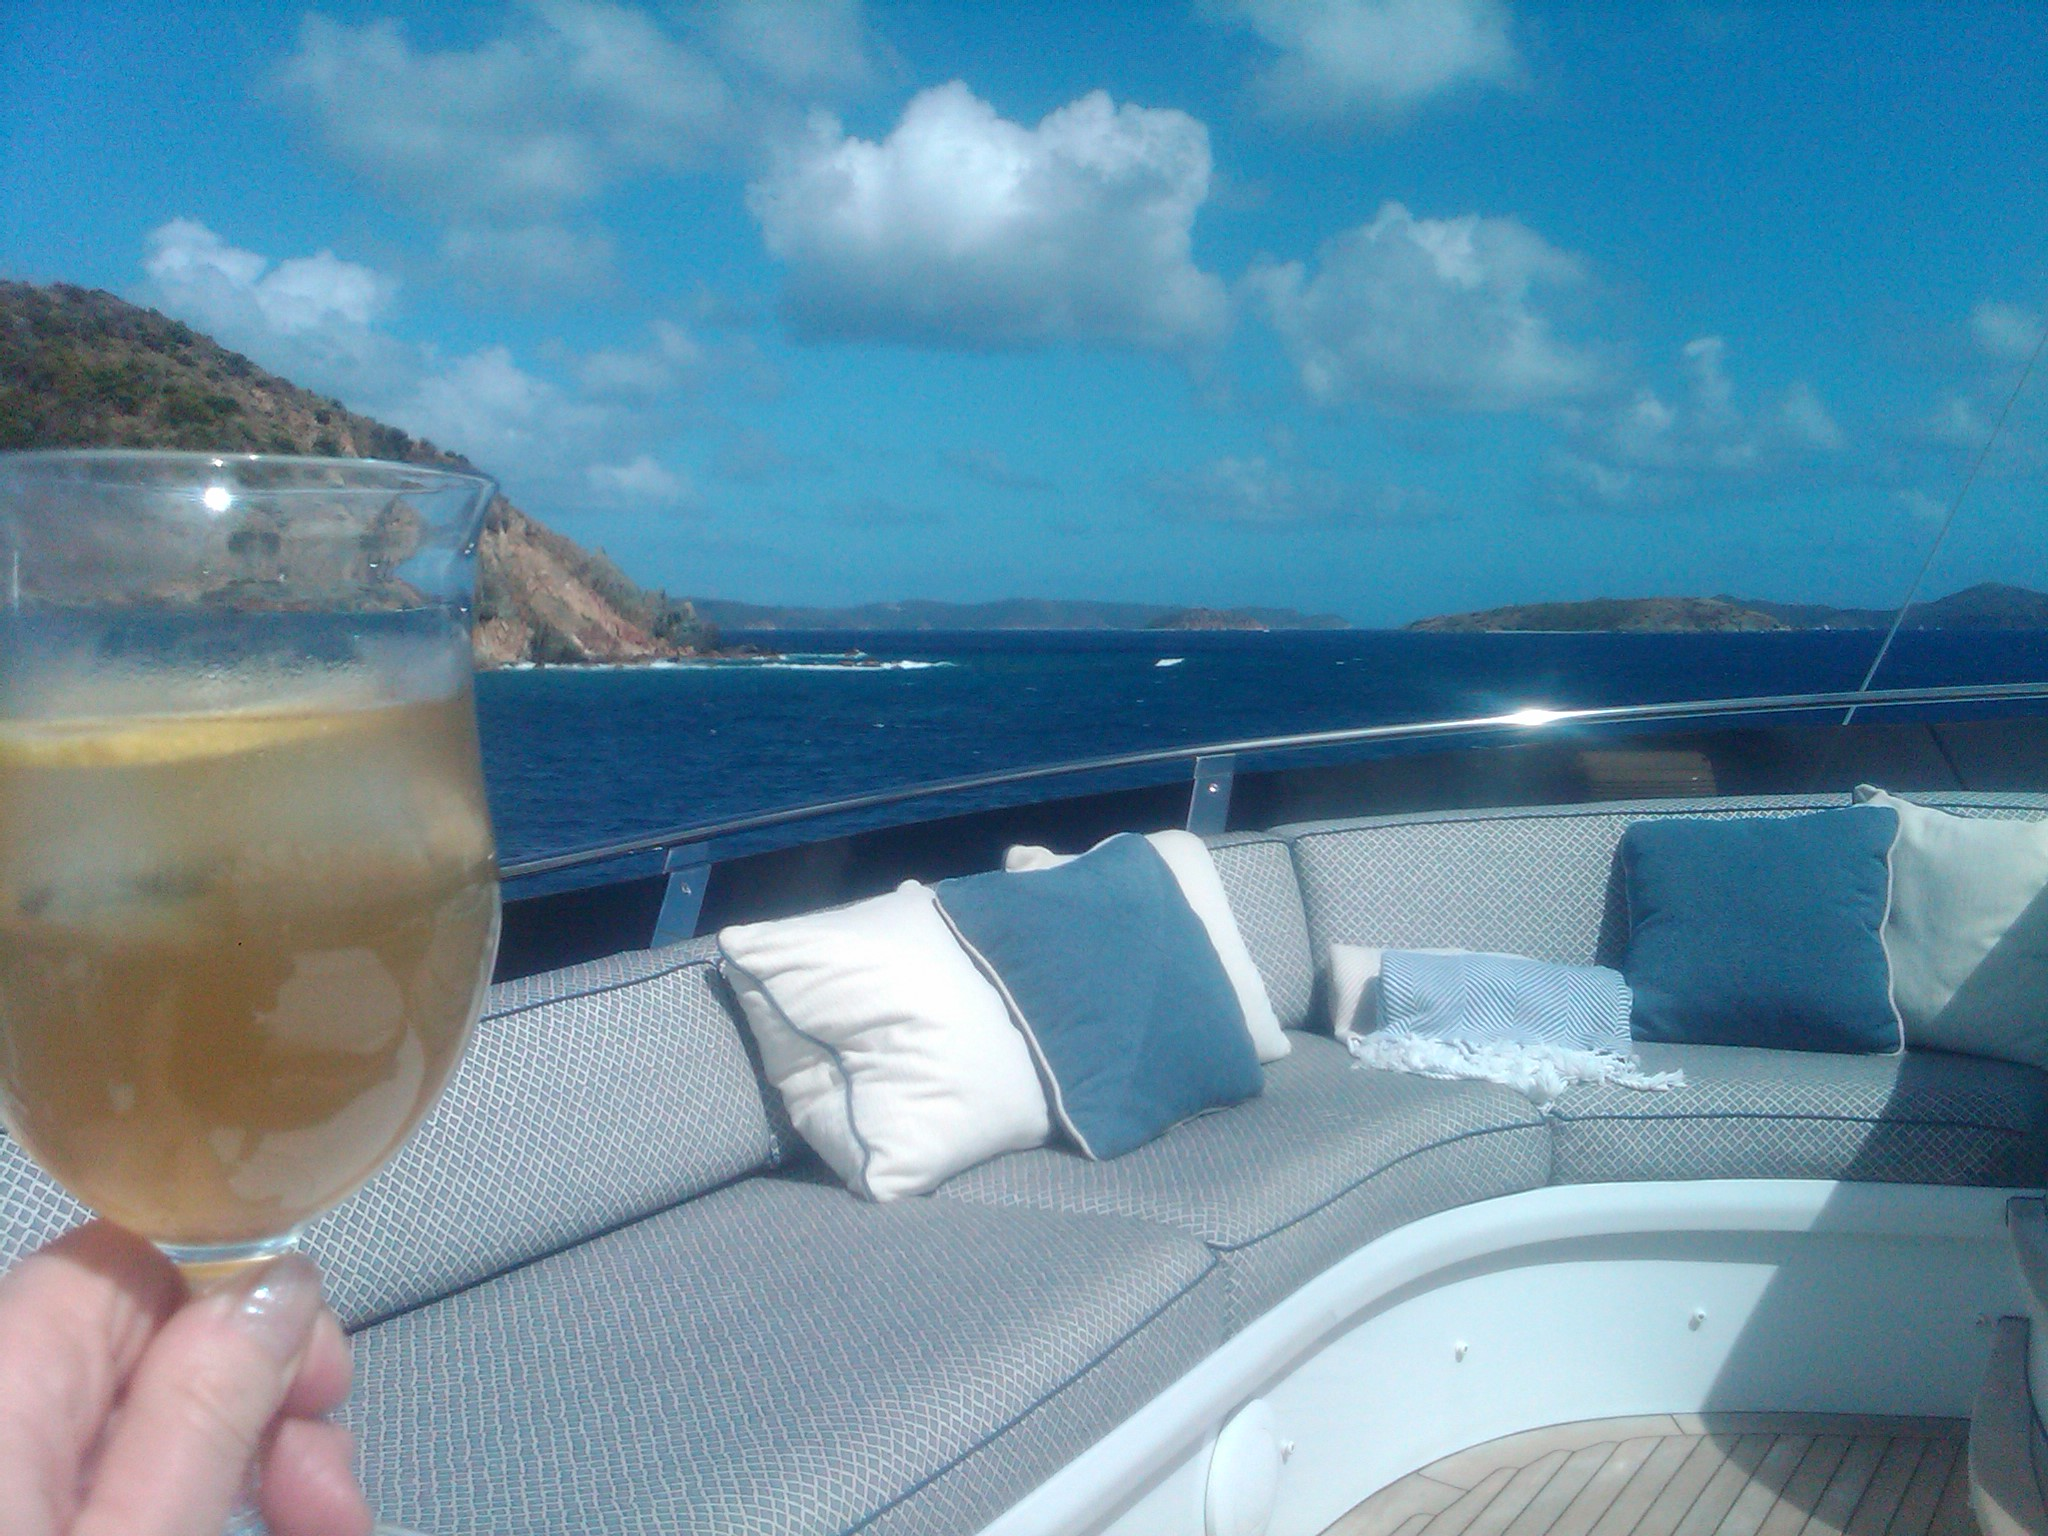 Wine glass toasting the journey on Tea Time Top Deck